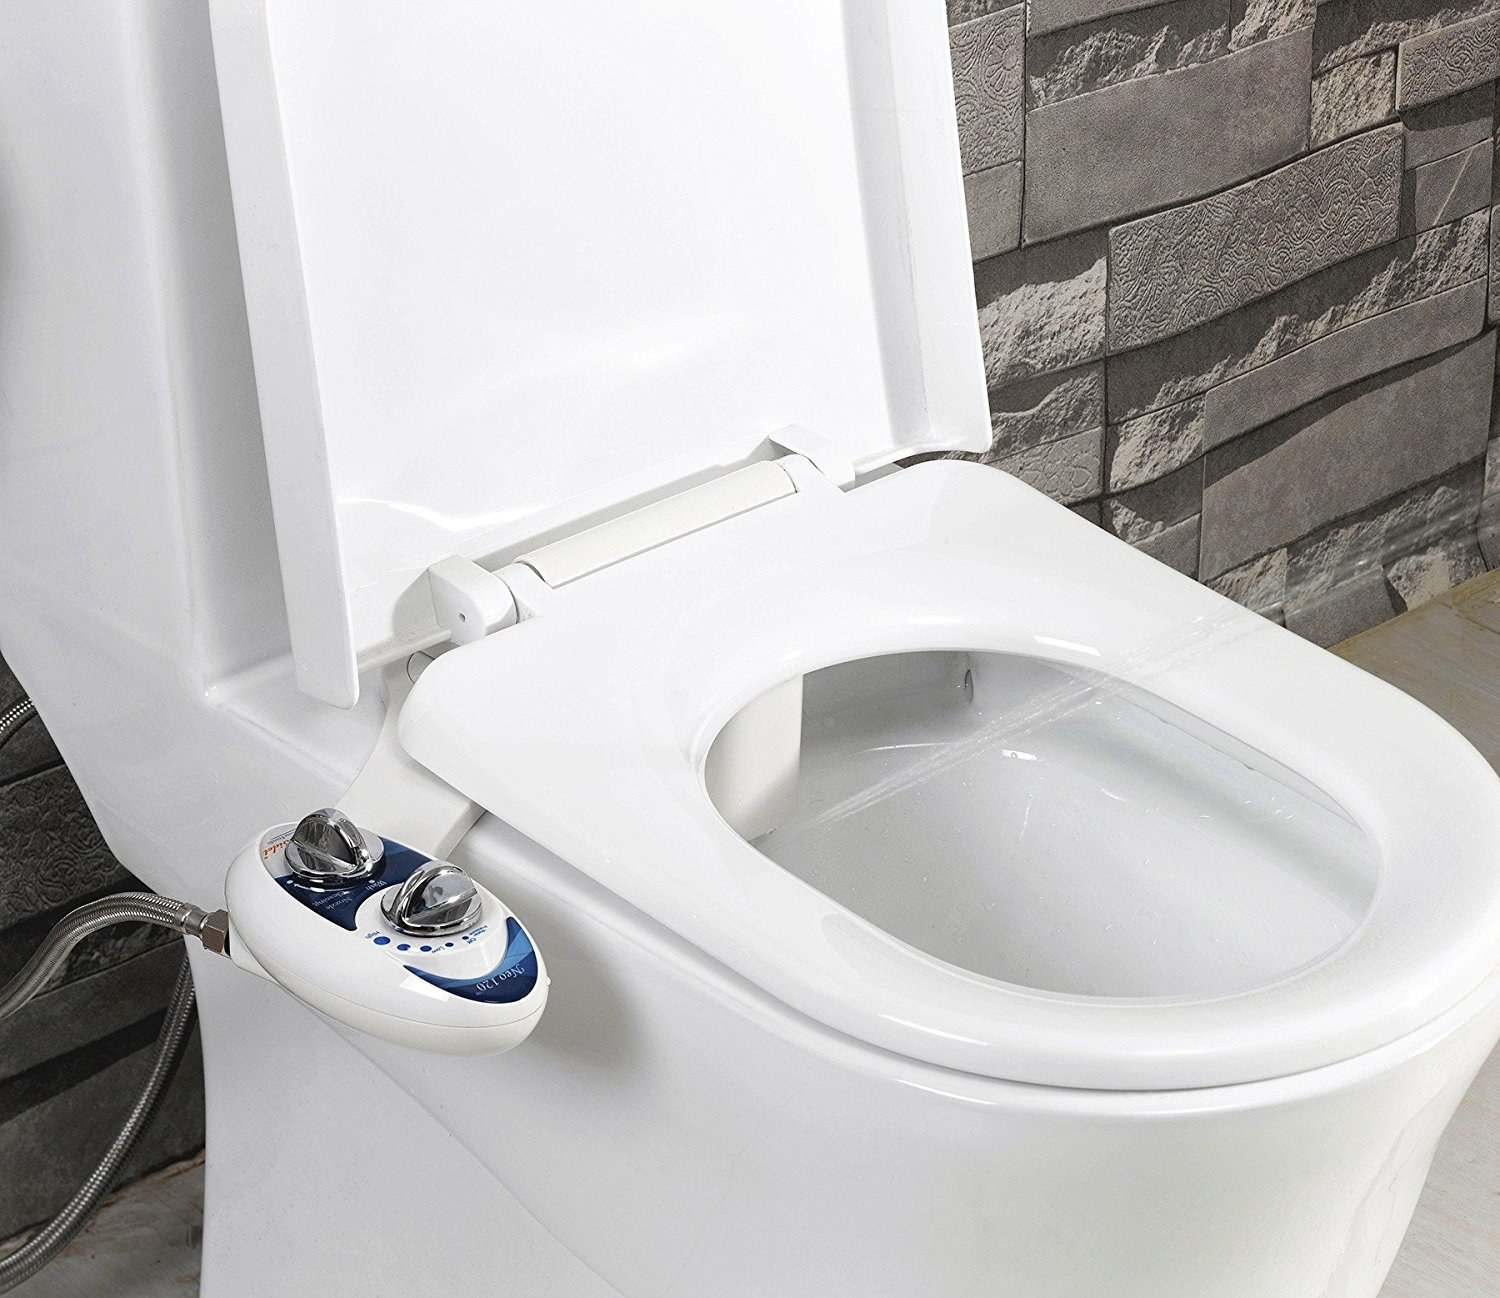 toilet with a bidet attachment on it